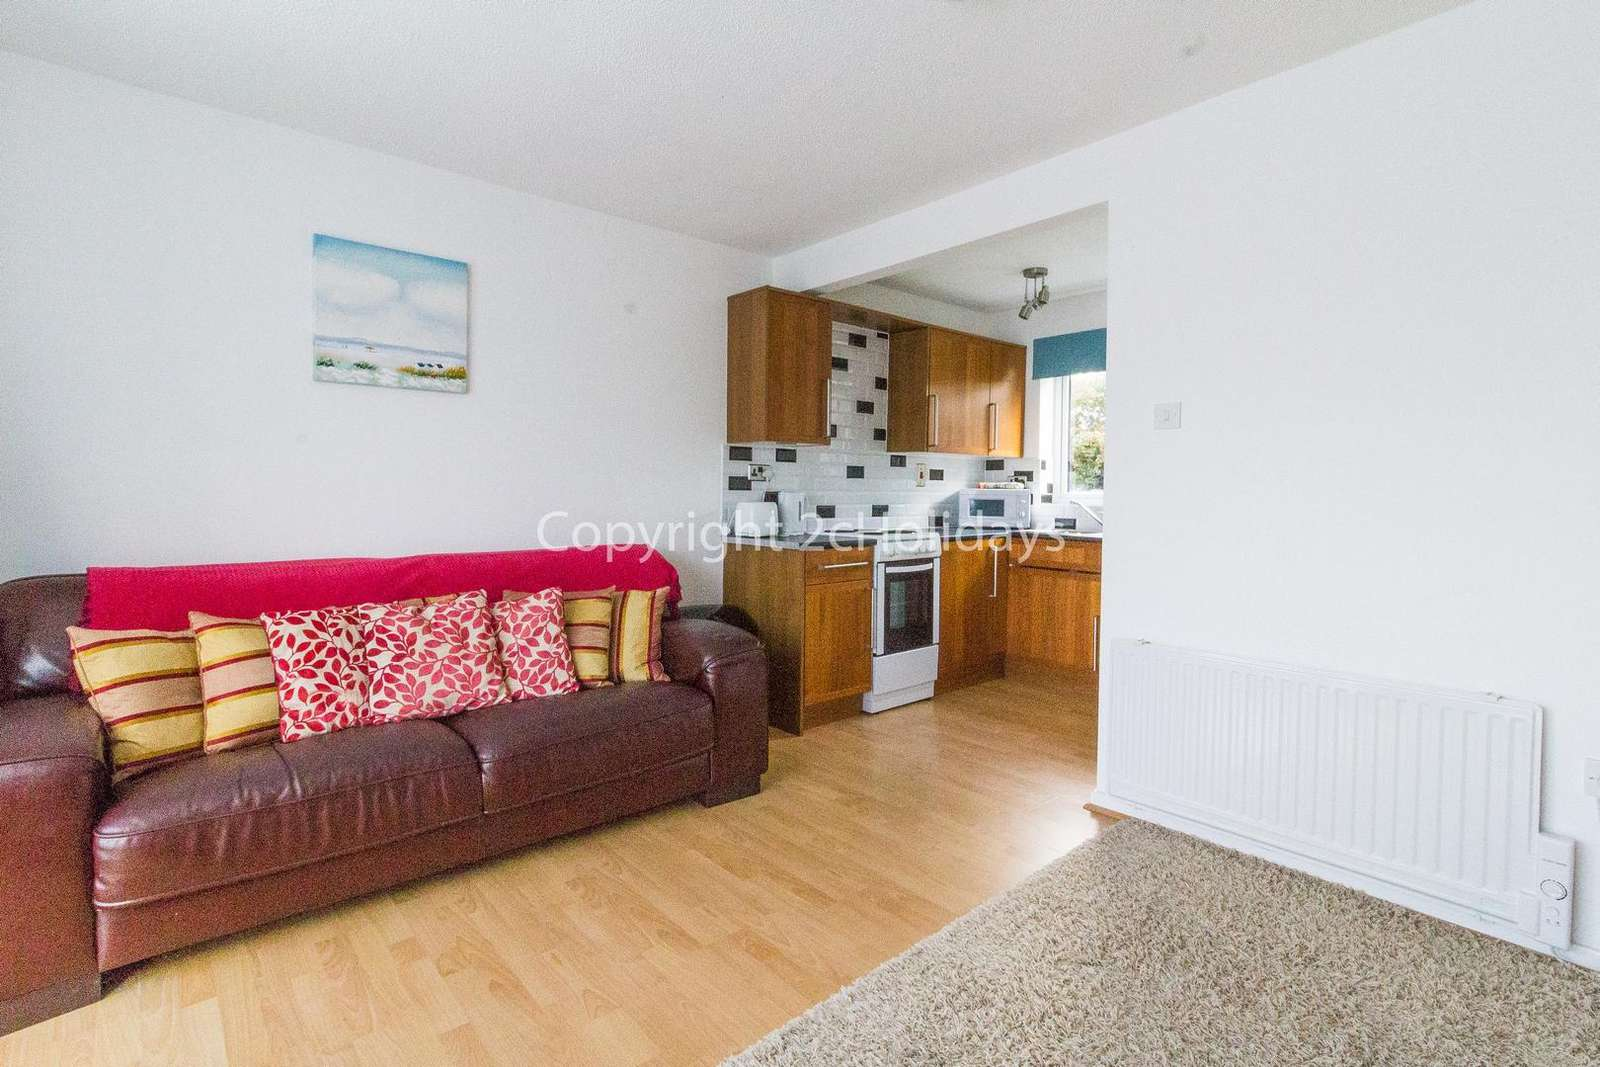 A great place for you and your family to relax! - property